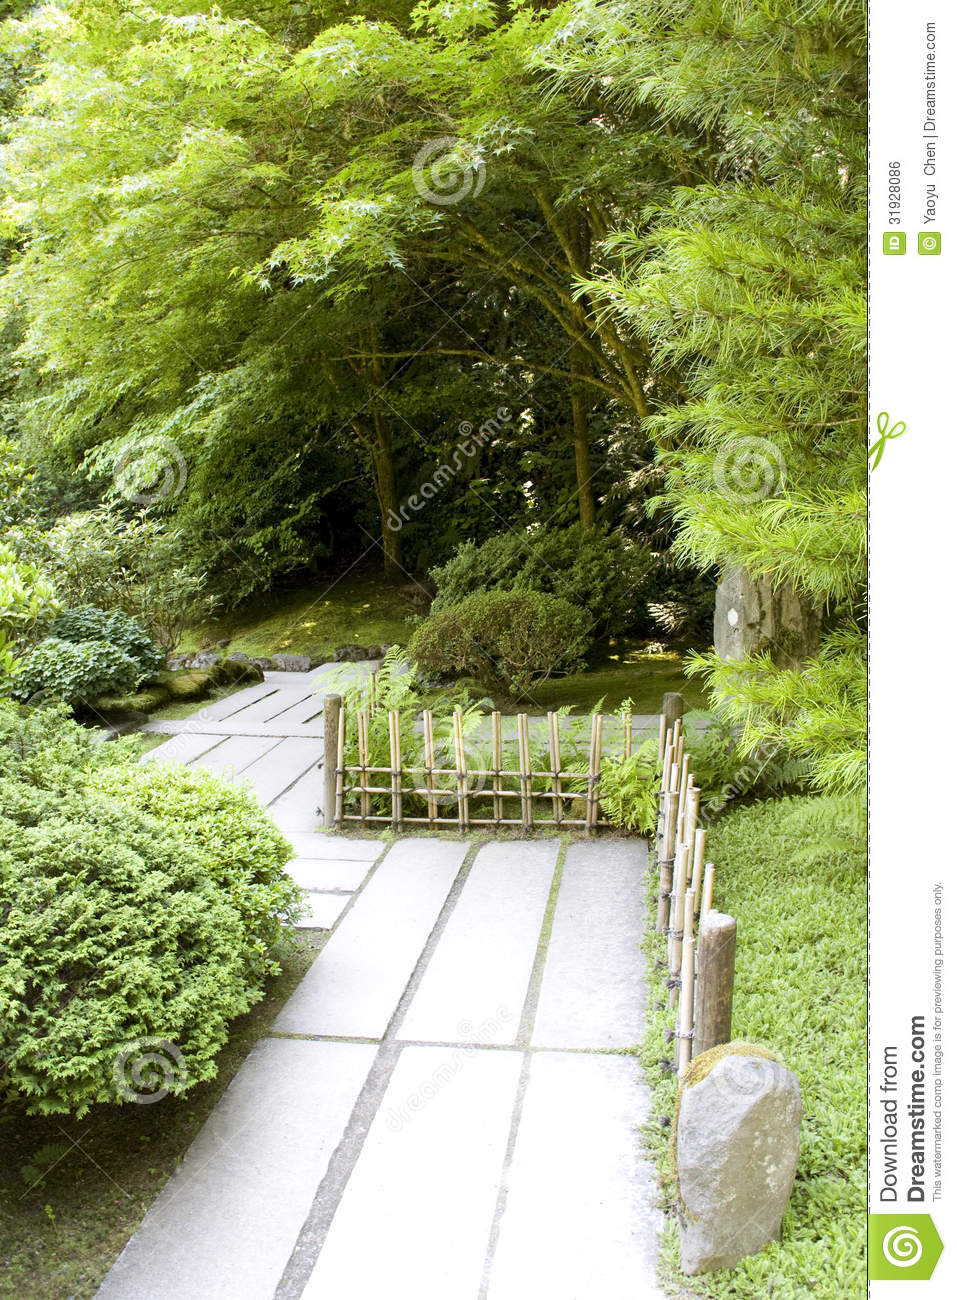 chemin dans le jardin japonais image libre de droits image 31928086. Black Bedroom Furniture Sets. Home Design Ideas